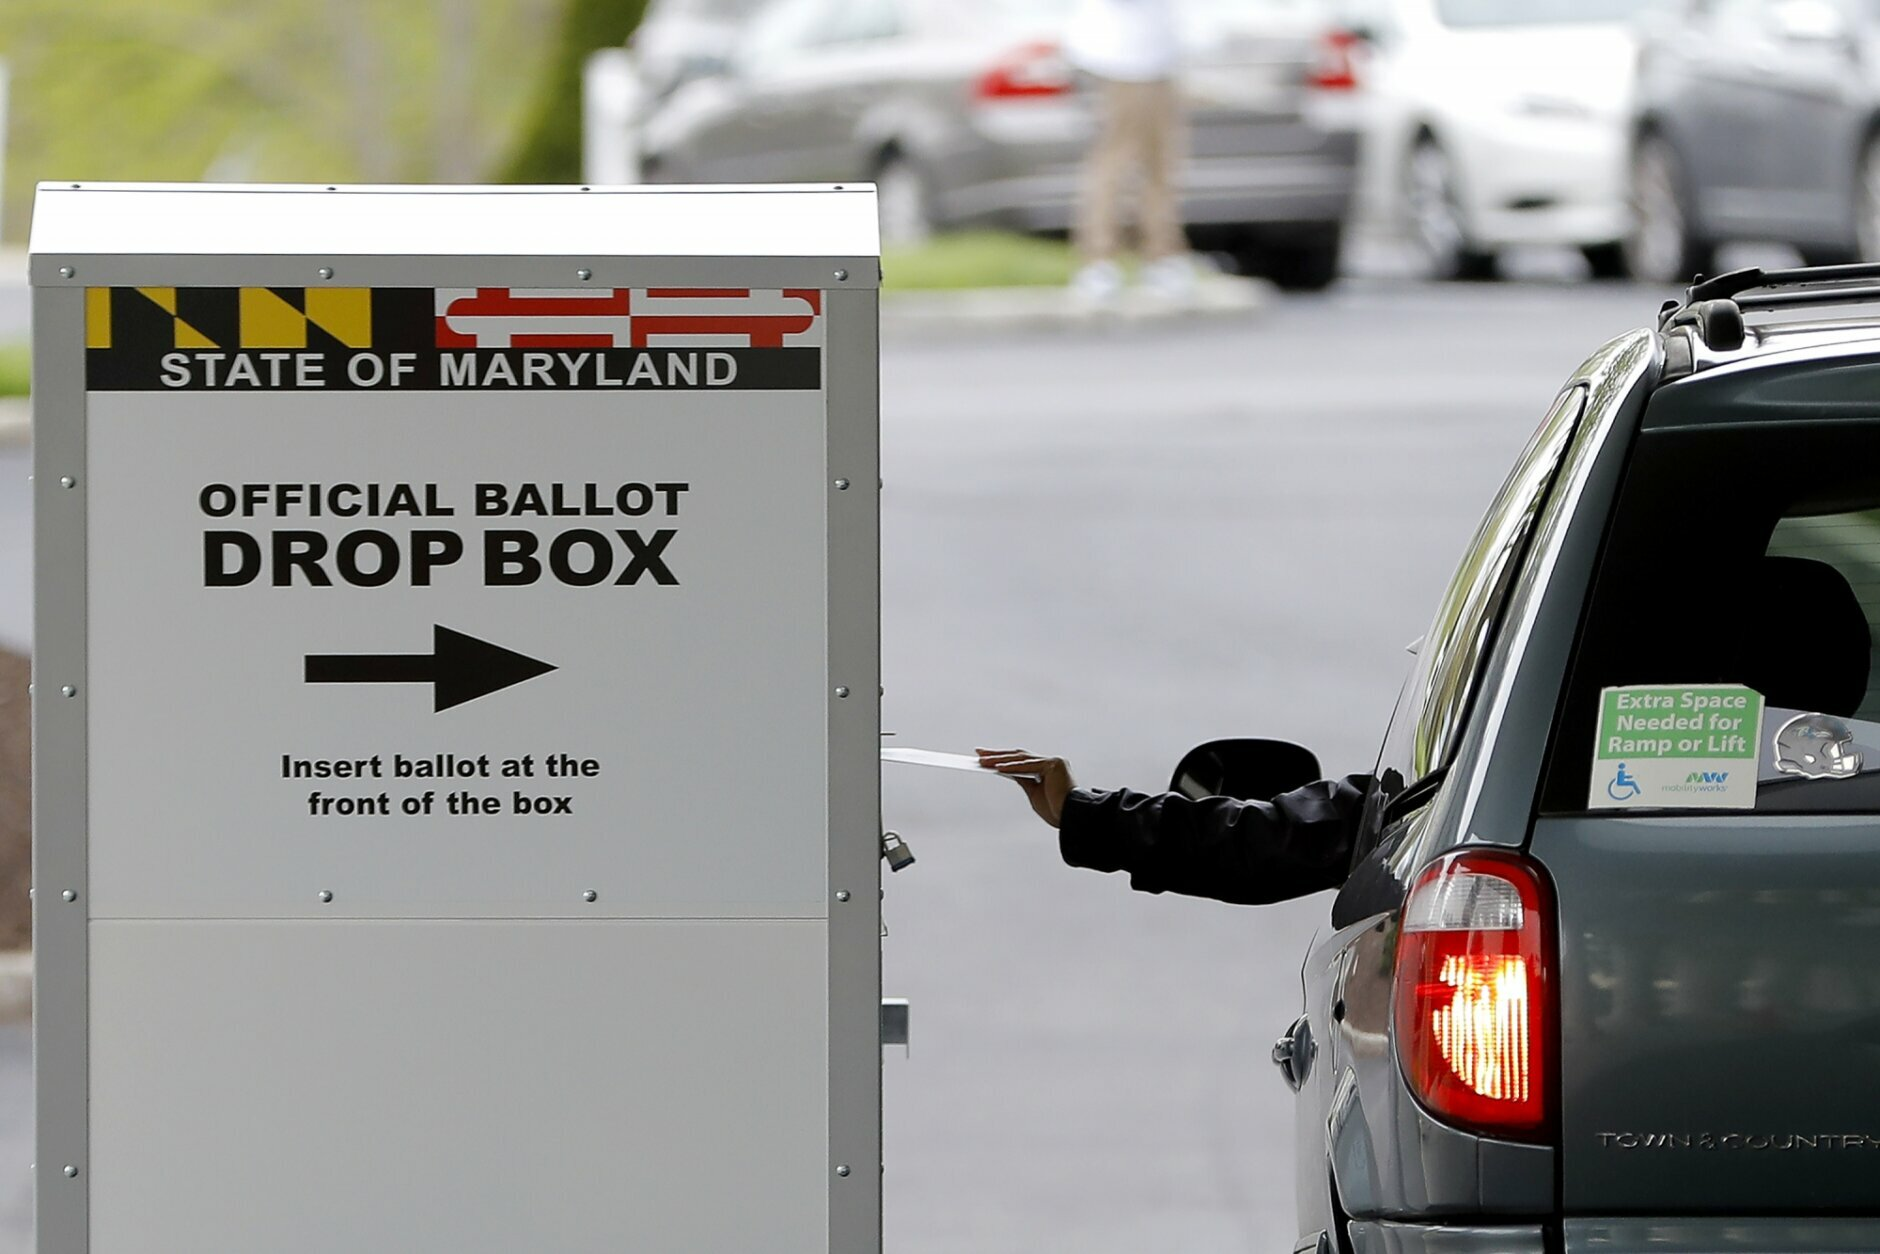 A motorist drops off a mail-in ballot outside of a voting center during the 7th Congressional District special election, Tuesday, April 28, 2020, in Windsor Mill, Md. The election to fill a seat left open by the death last October of Congressman Elijah Cummings has been dramatically reshaped by the coronavirus outbreak. (AP Photo/Julio Cortez)